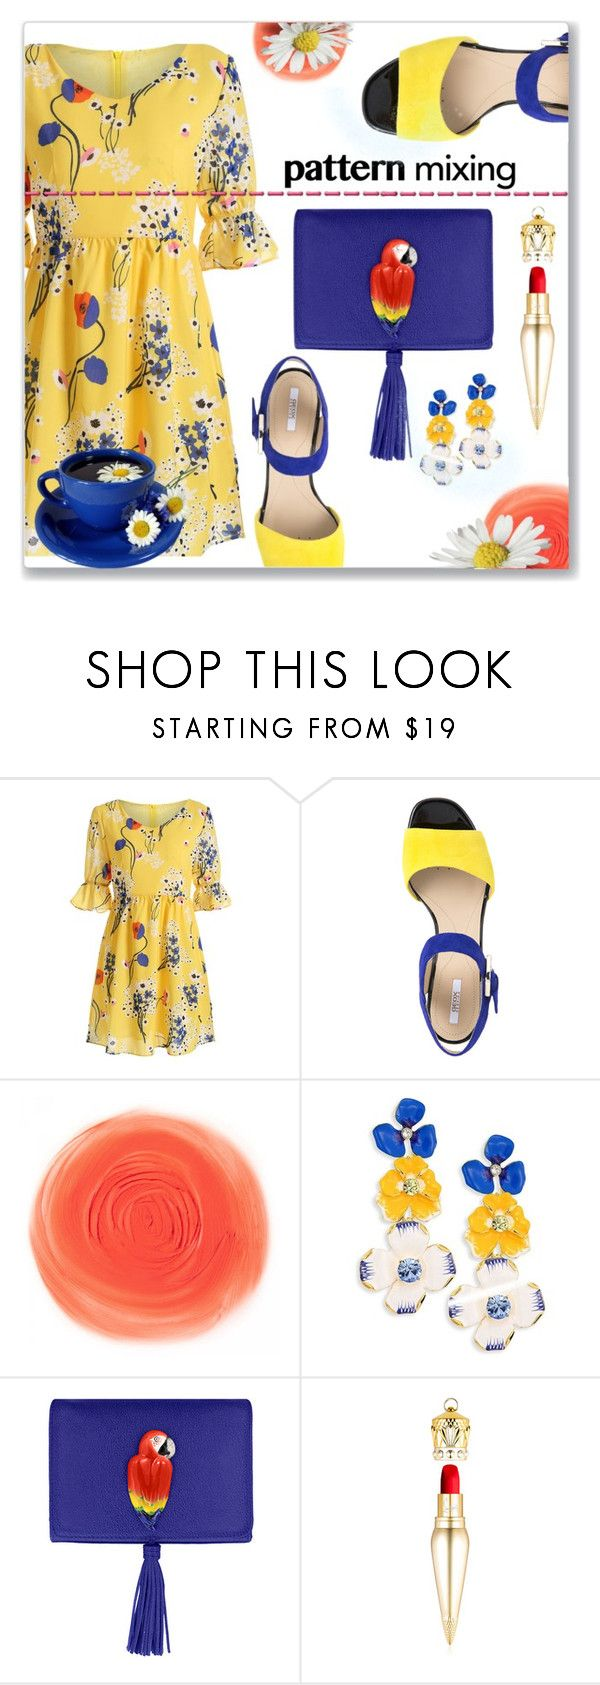 """Mix it up"" by interesting-times ❤ liked on Polyvore featuring Geox, Kenneth Jay Lane, Nach Bijoux, Christian Louboutin and patternmixing"